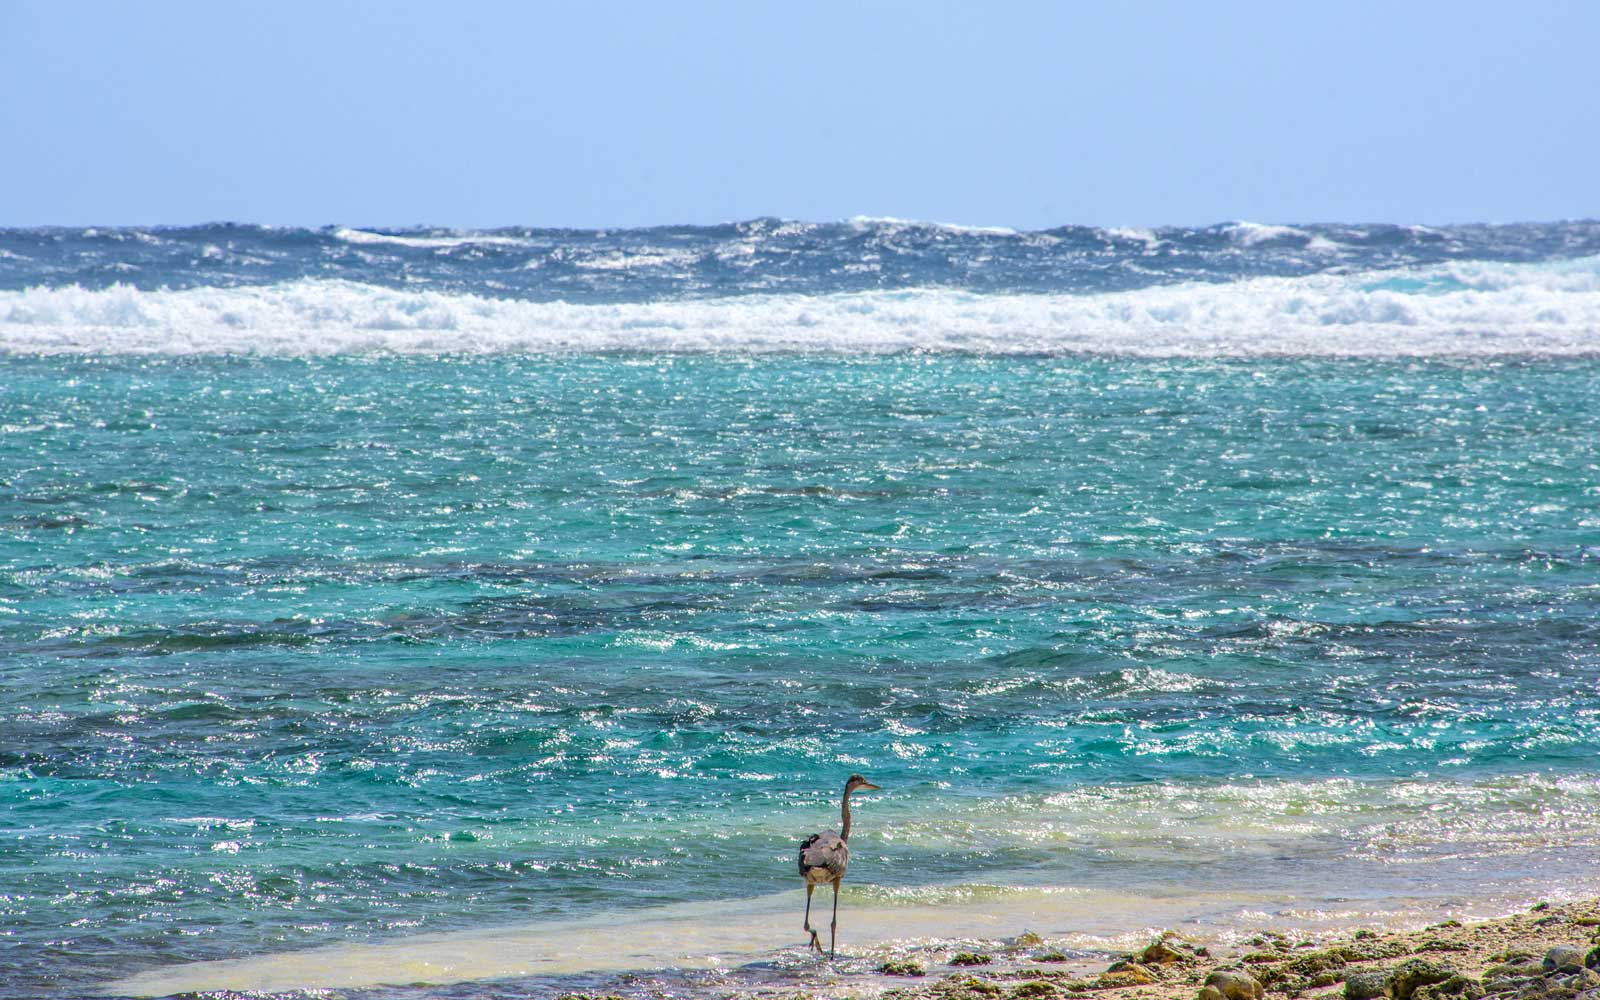 Heron walking on the beach at Half Moon Caye. Belize Caribbean.